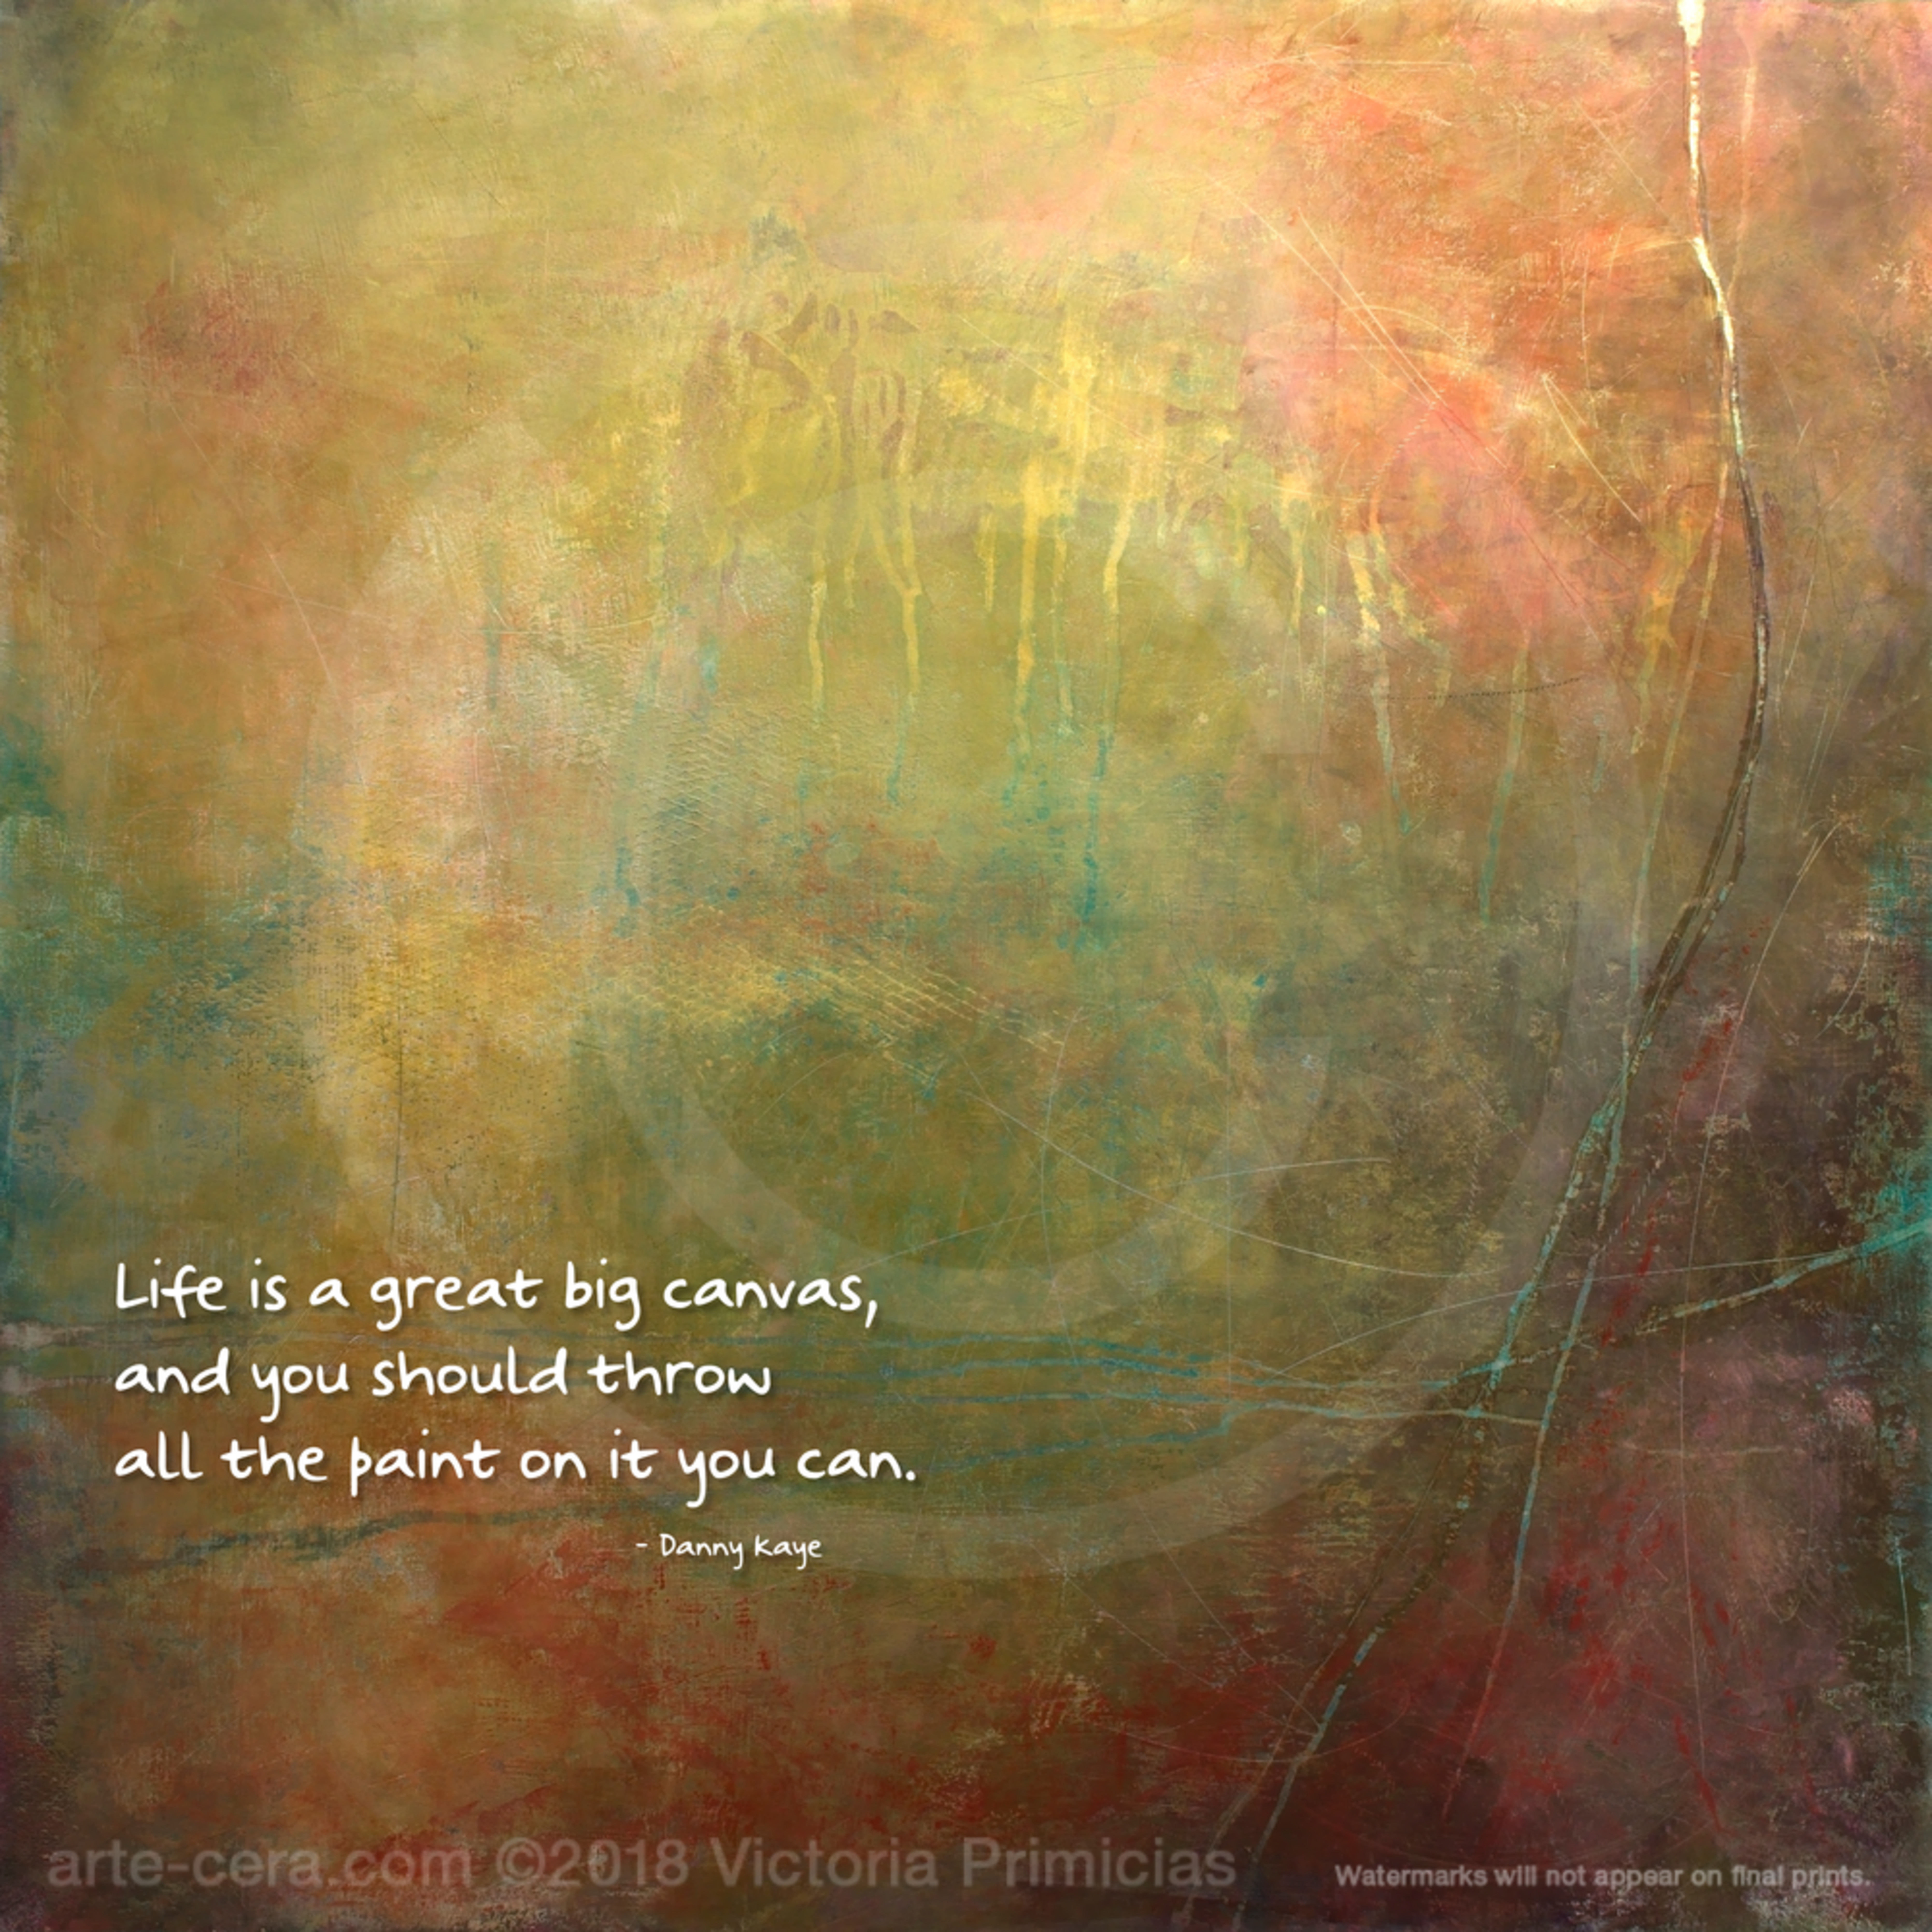 Life is quotes what weeping kaye g8qcec